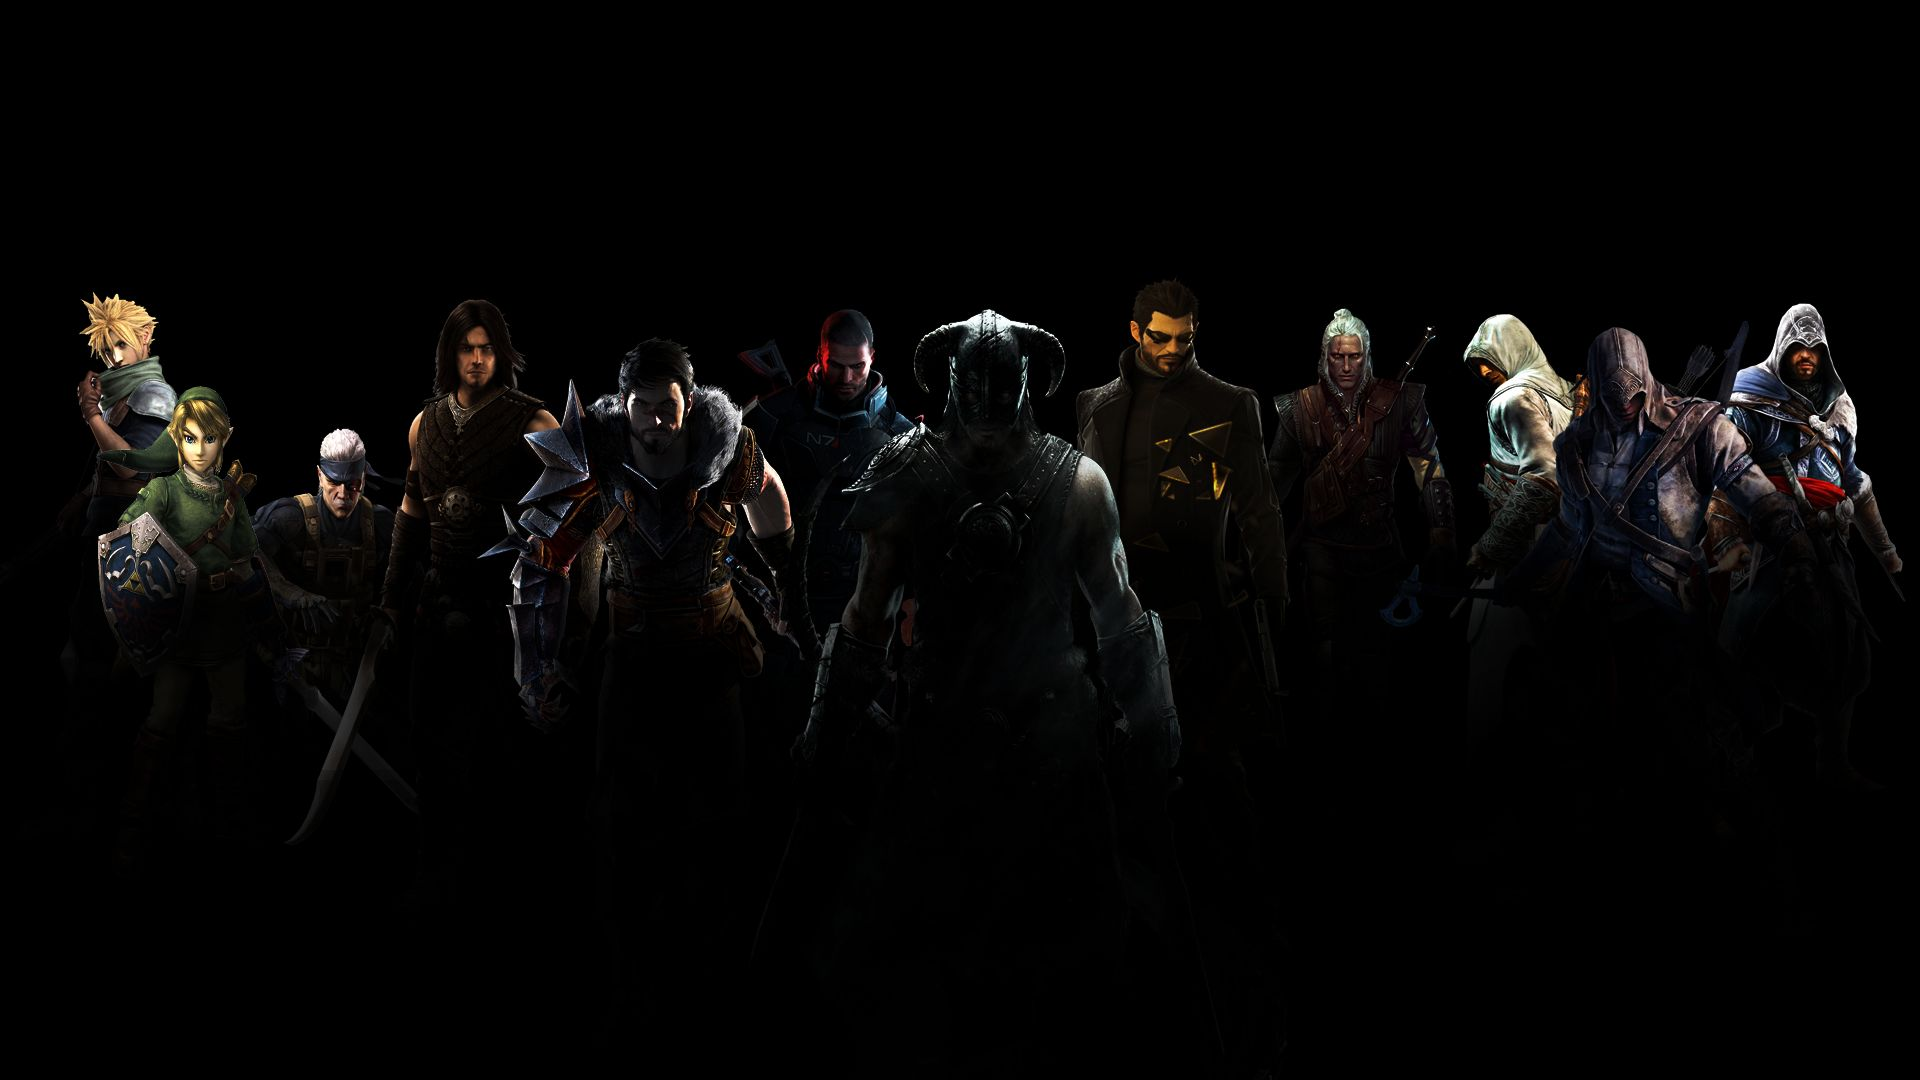 Video Game Characters Wallpapers High Definition Is Cool Wallpapers